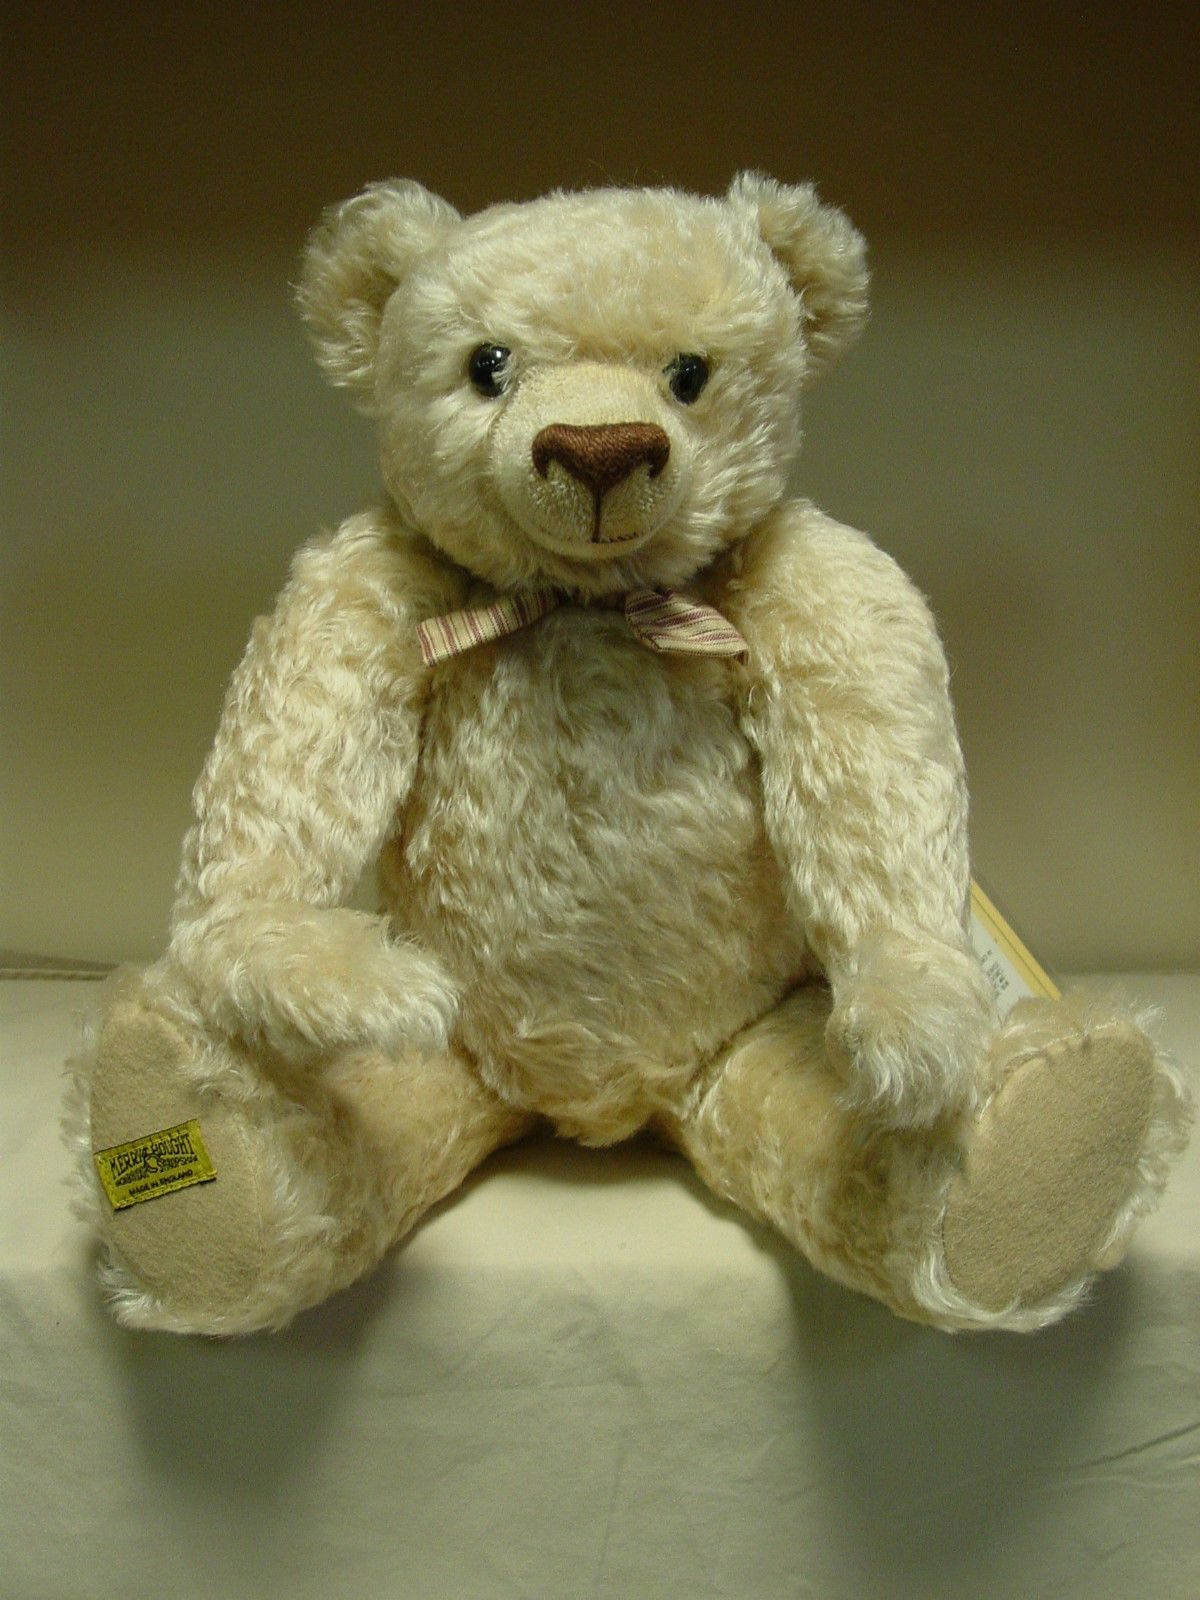 Merrythought Teddy Bears - Pure Elegance #HL18NG - Limited to 500 - Mohair   eBay